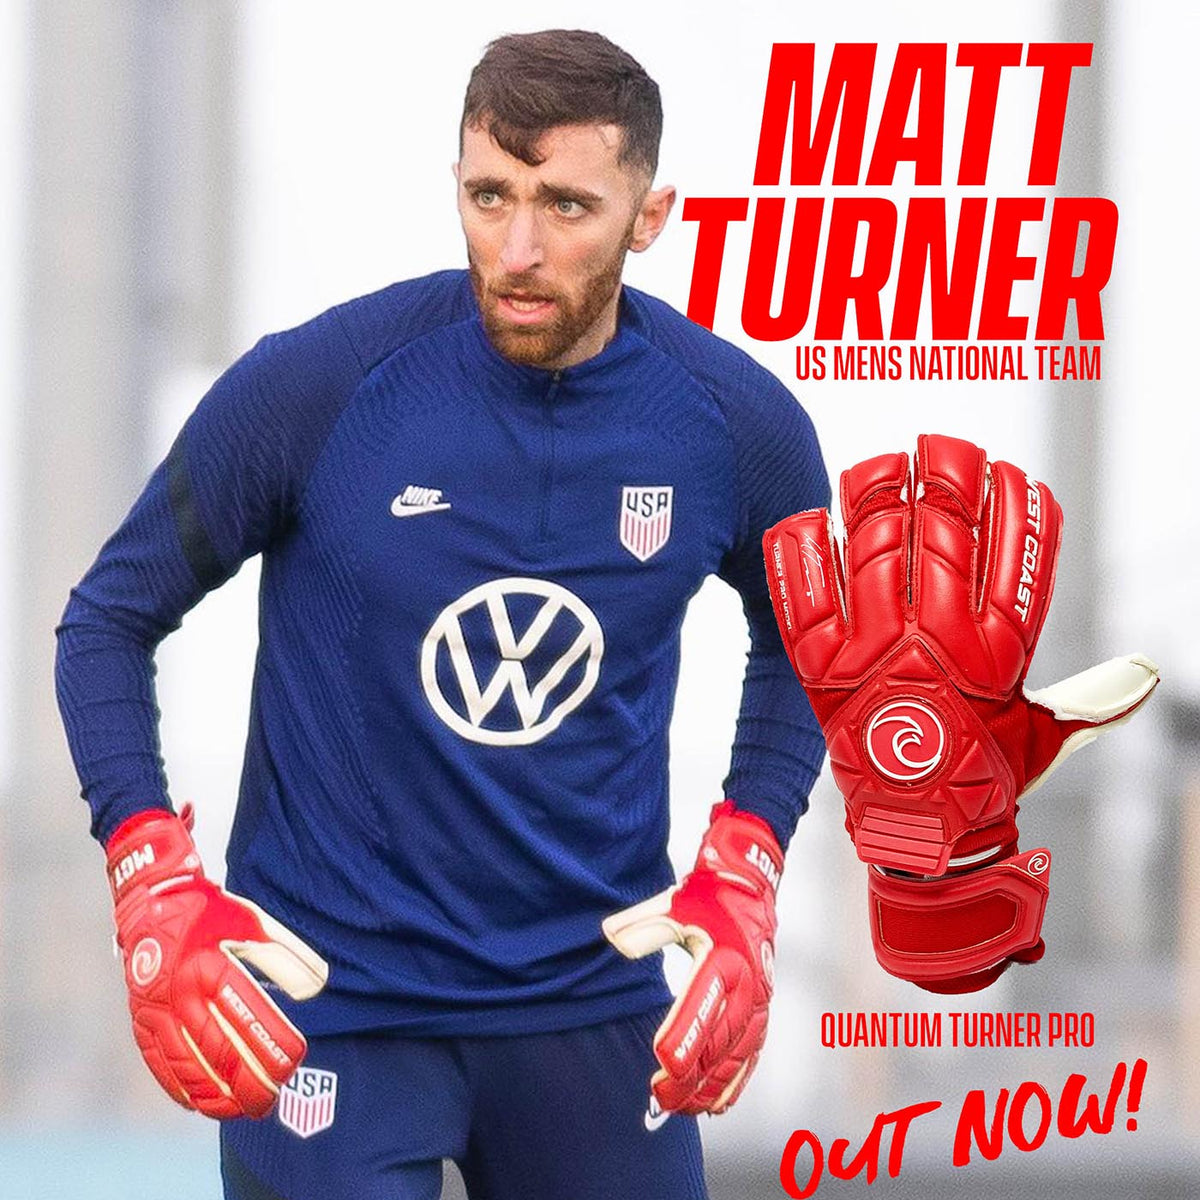 QUANTUM Turner Pro Model - West Coast Goalkeeping